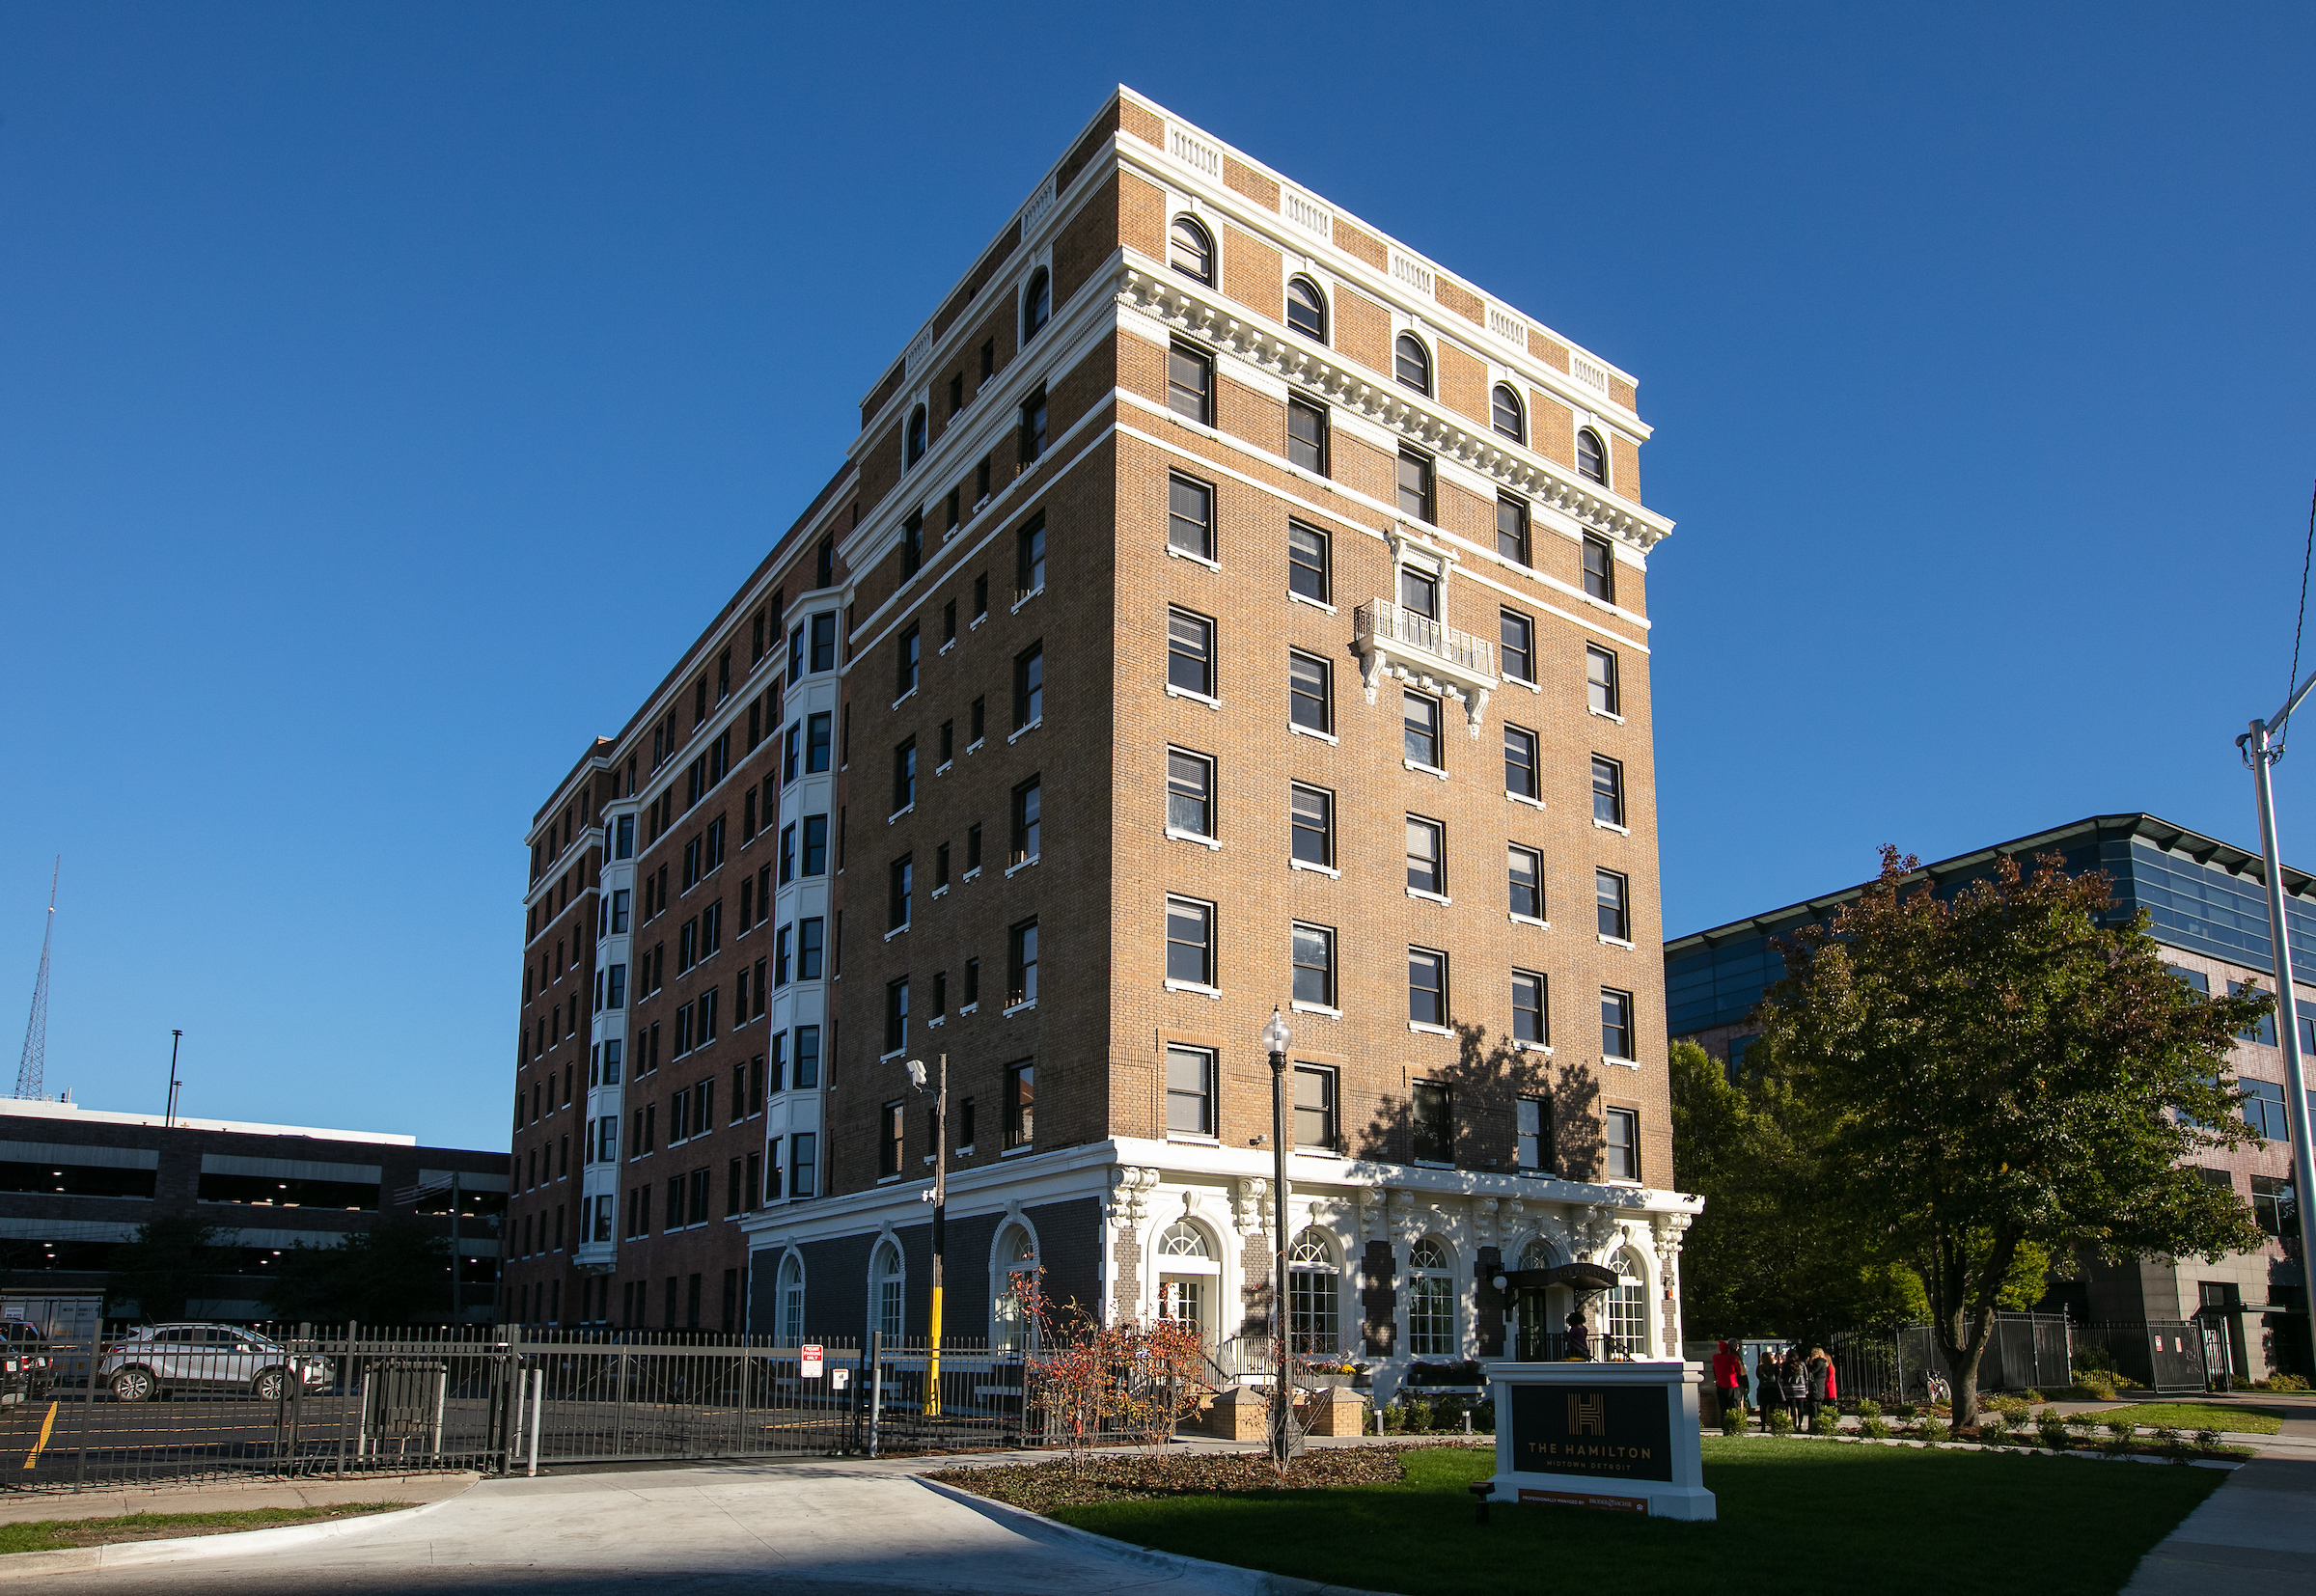 A multi-story rectangular brick building with a cul-de-sac in front.